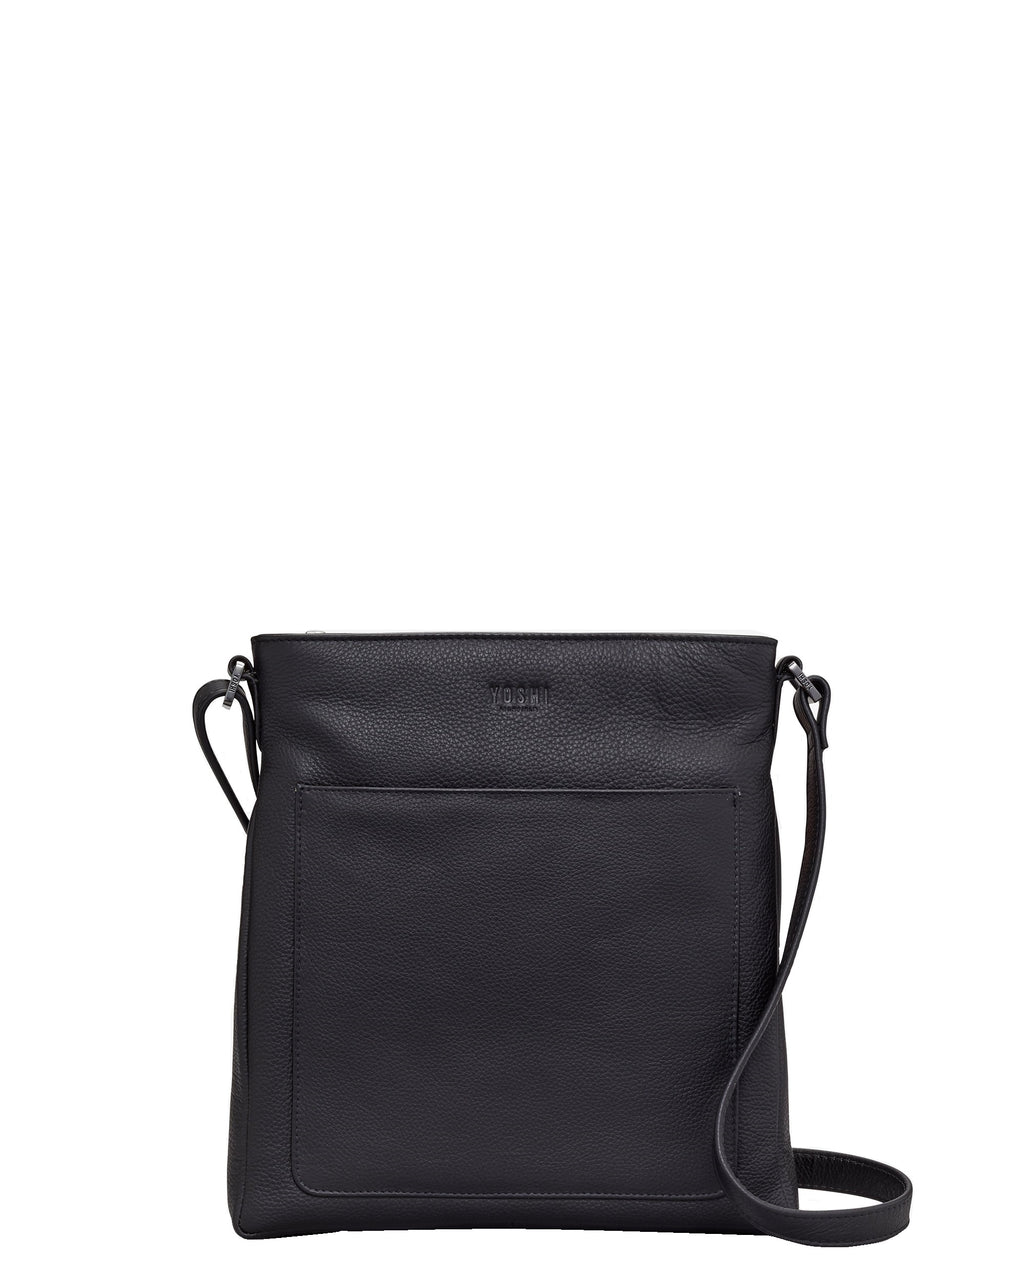 Bryant Cross Body